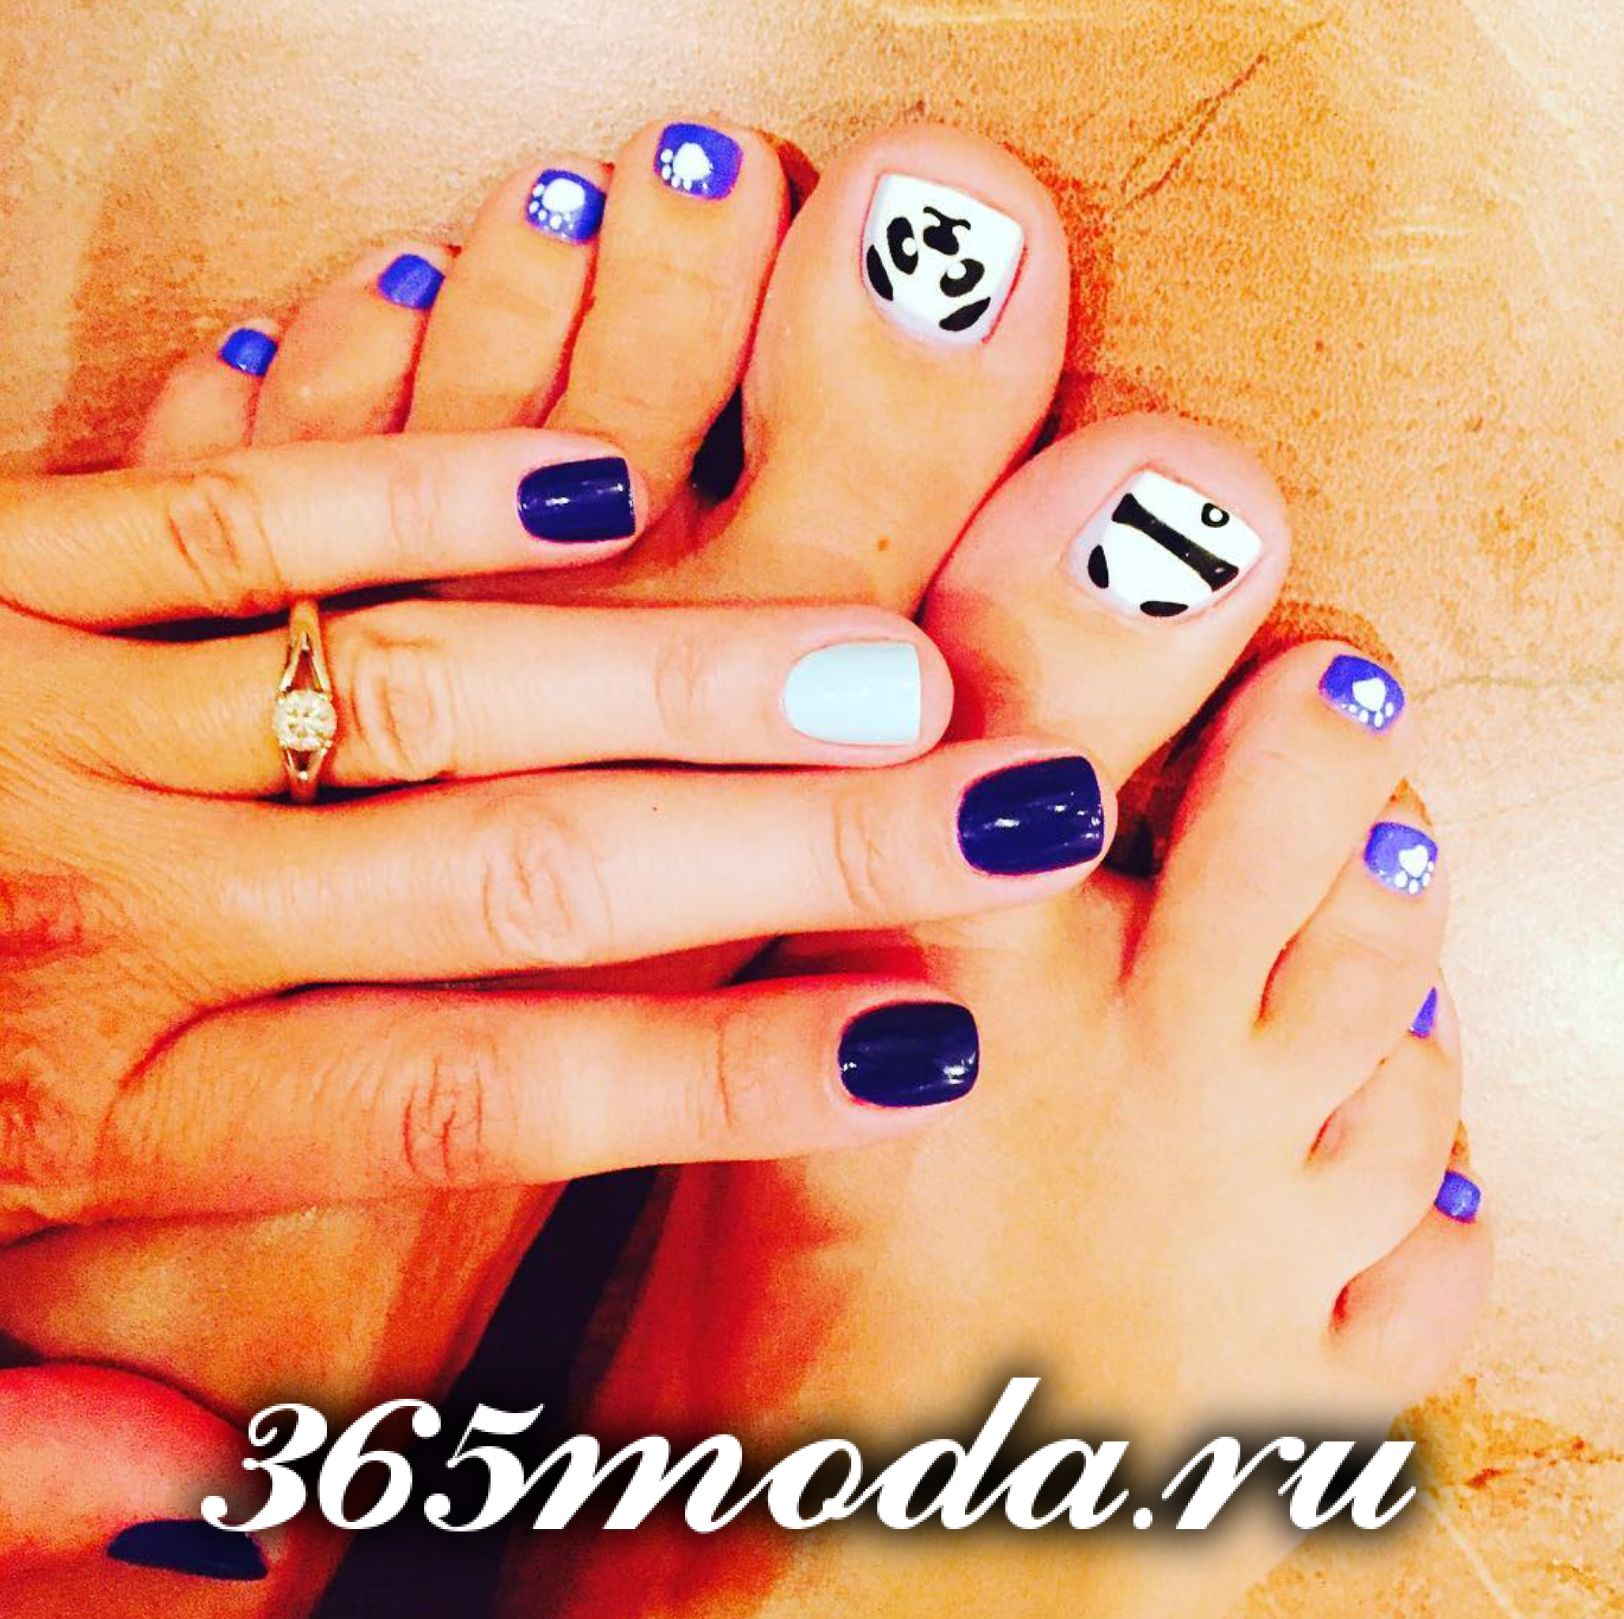 pedicur (32)